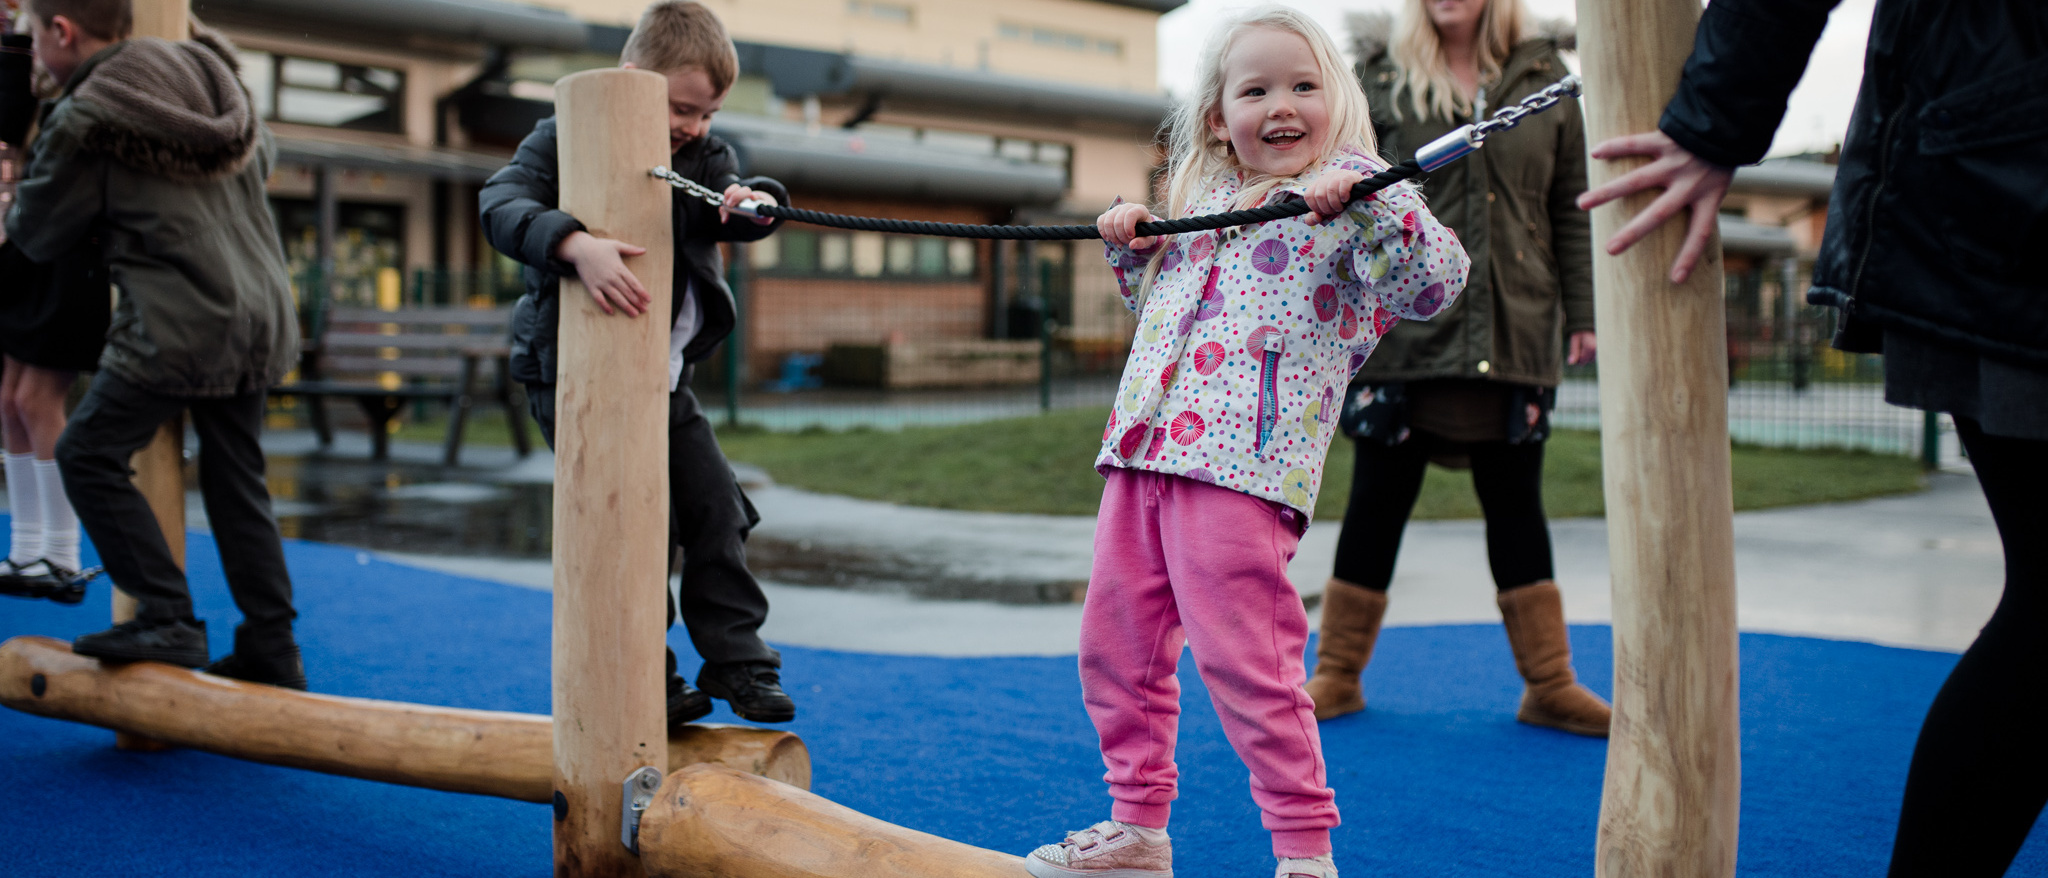 Children playing on rope climbing frame